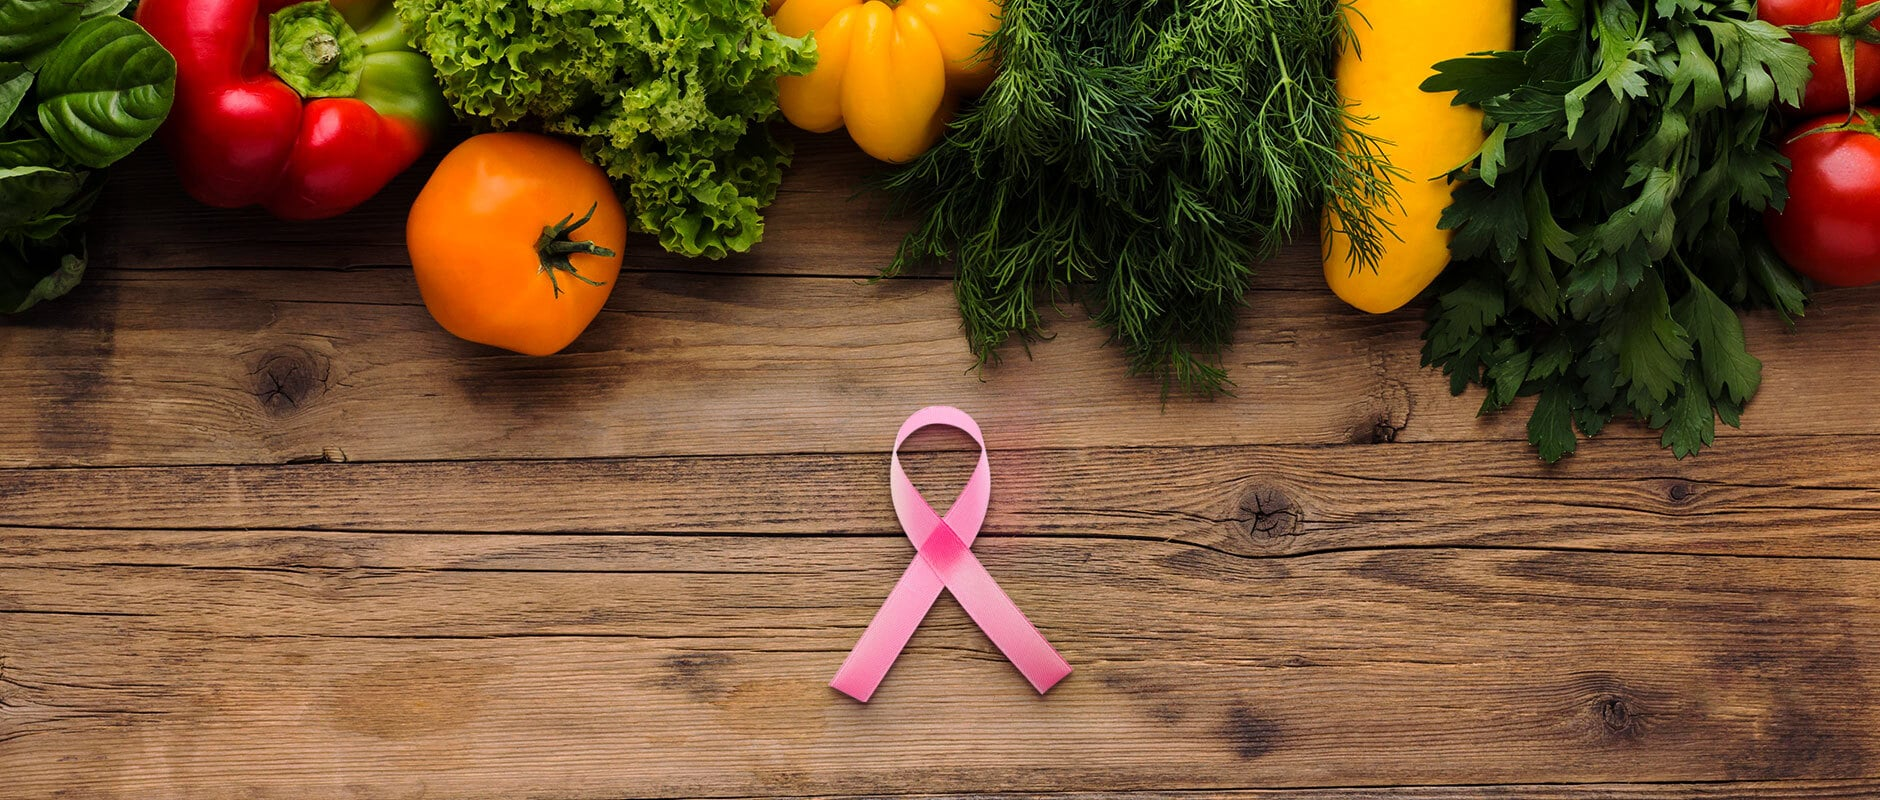 Healthy Diet Plan To Reduce Risk For Breast Cancer